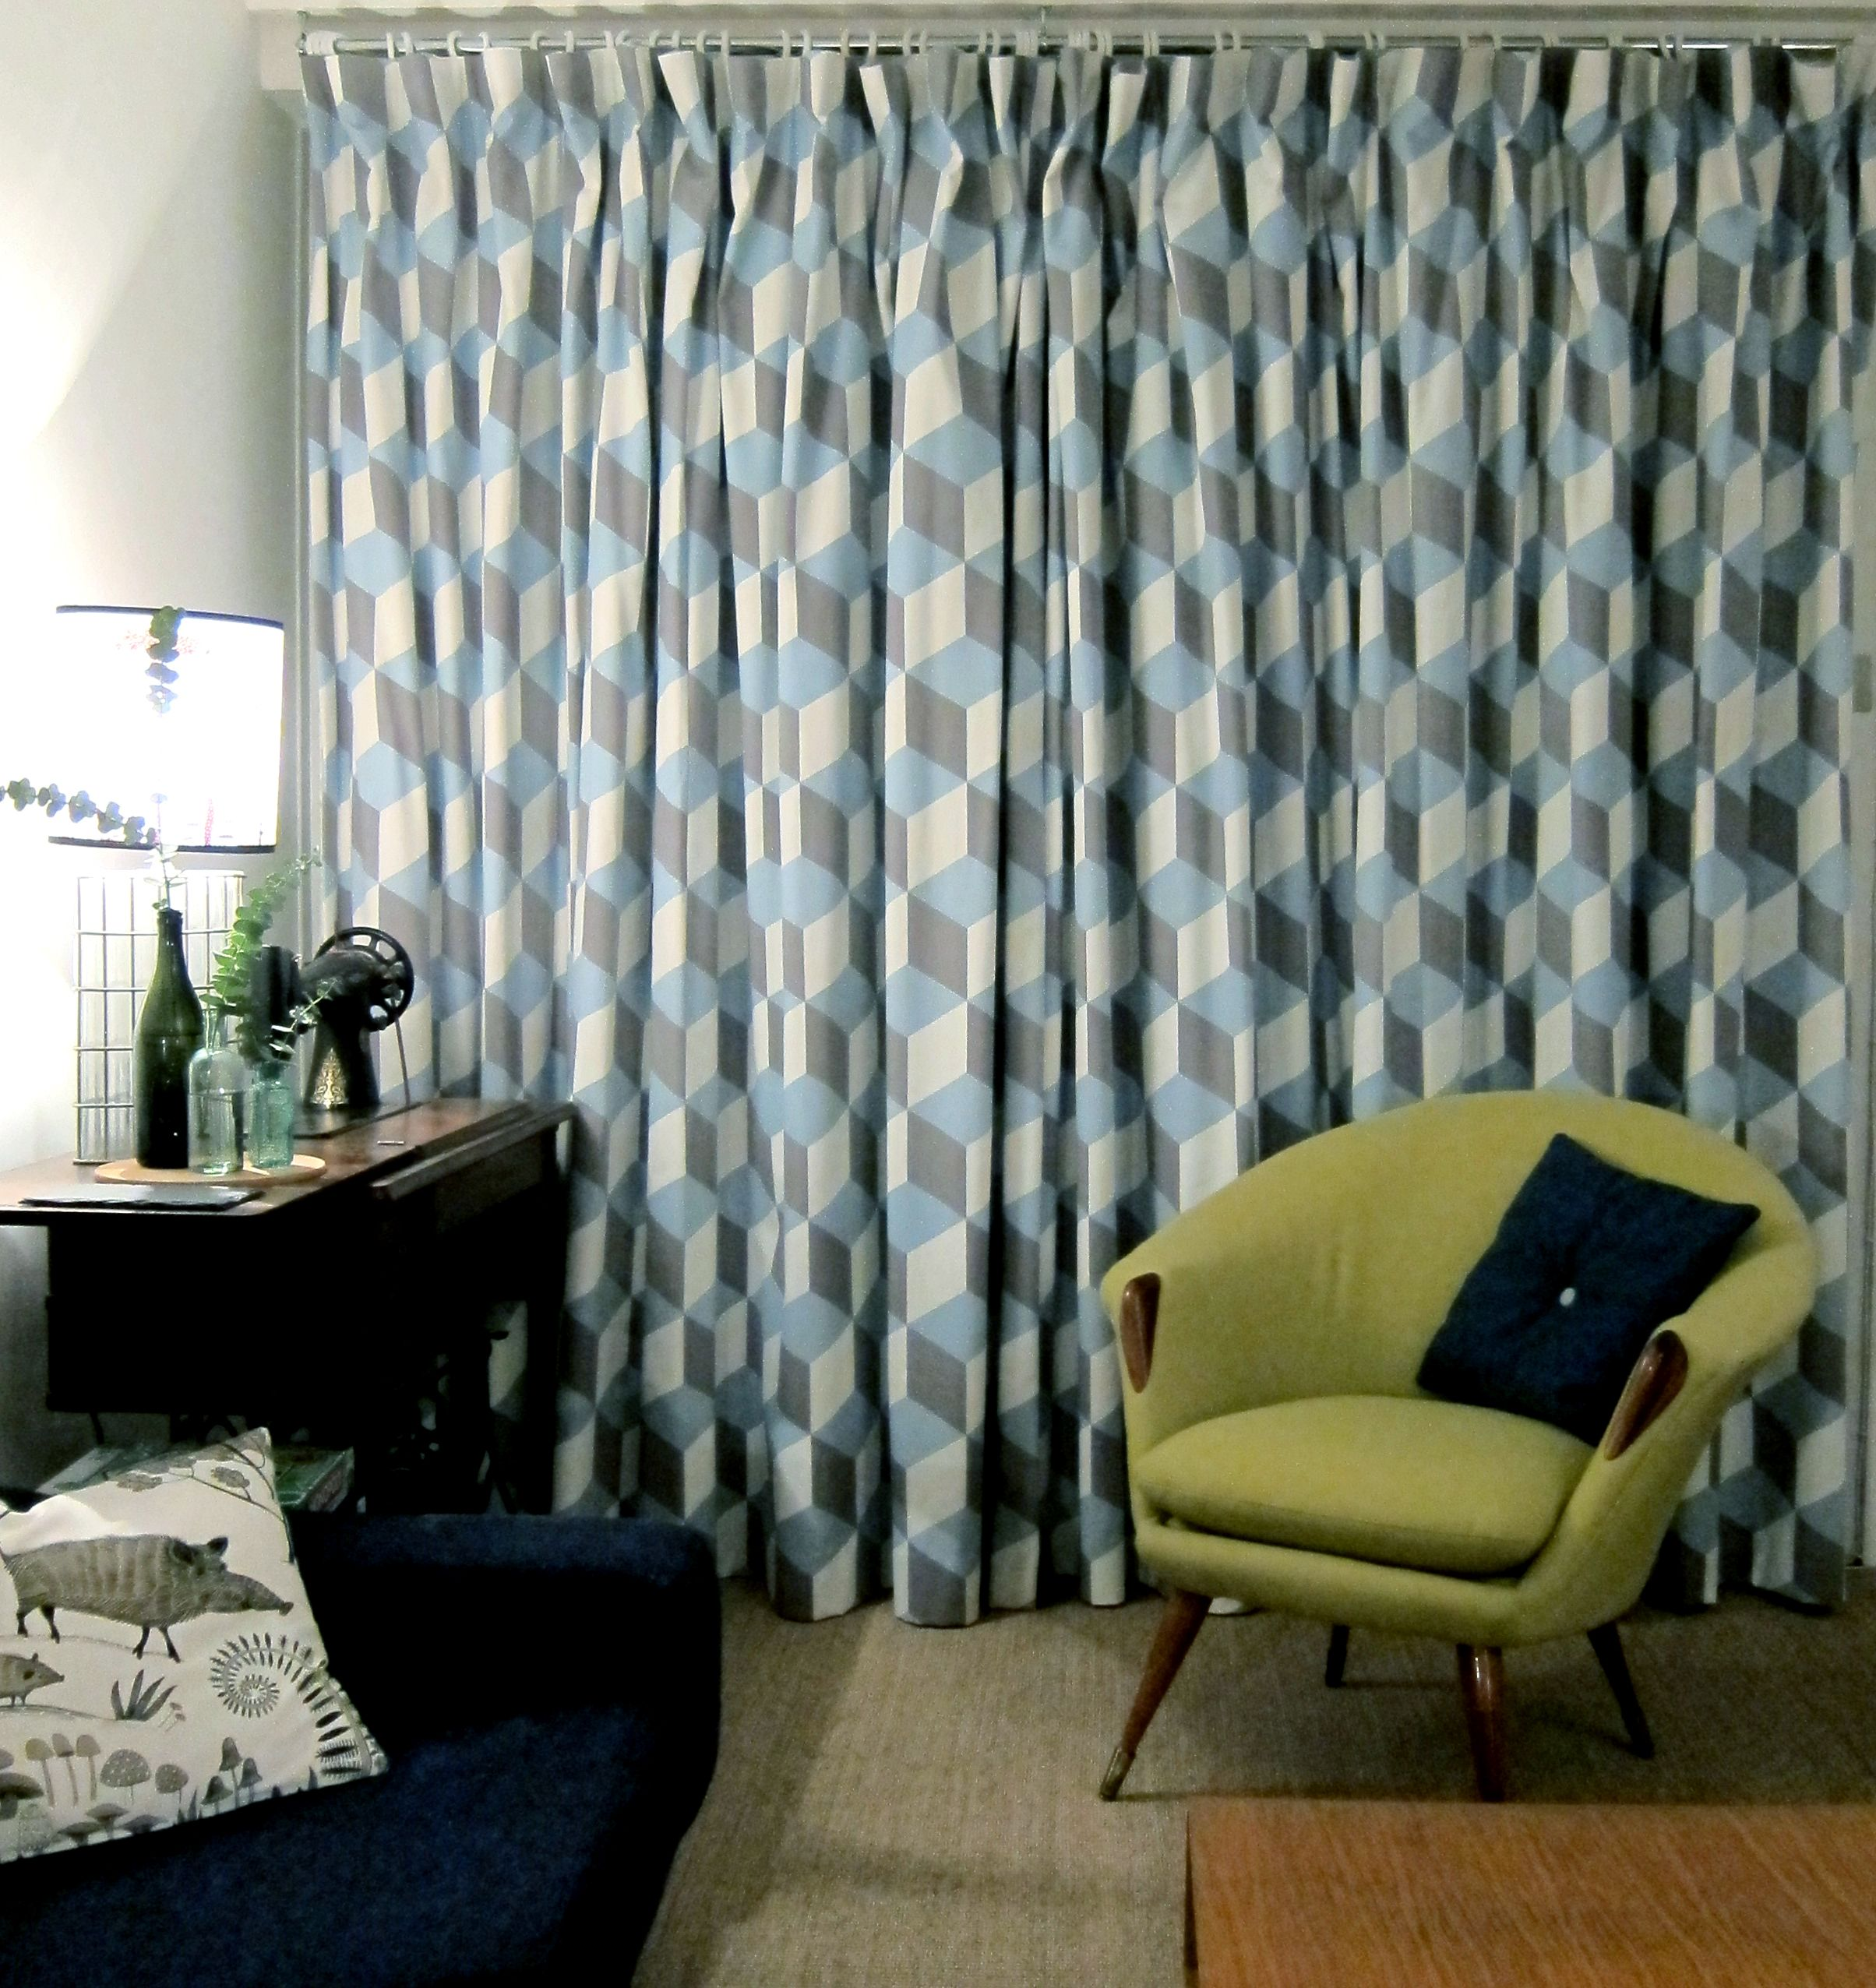 Mid century modern style lounge with bold geometric print curtains ...